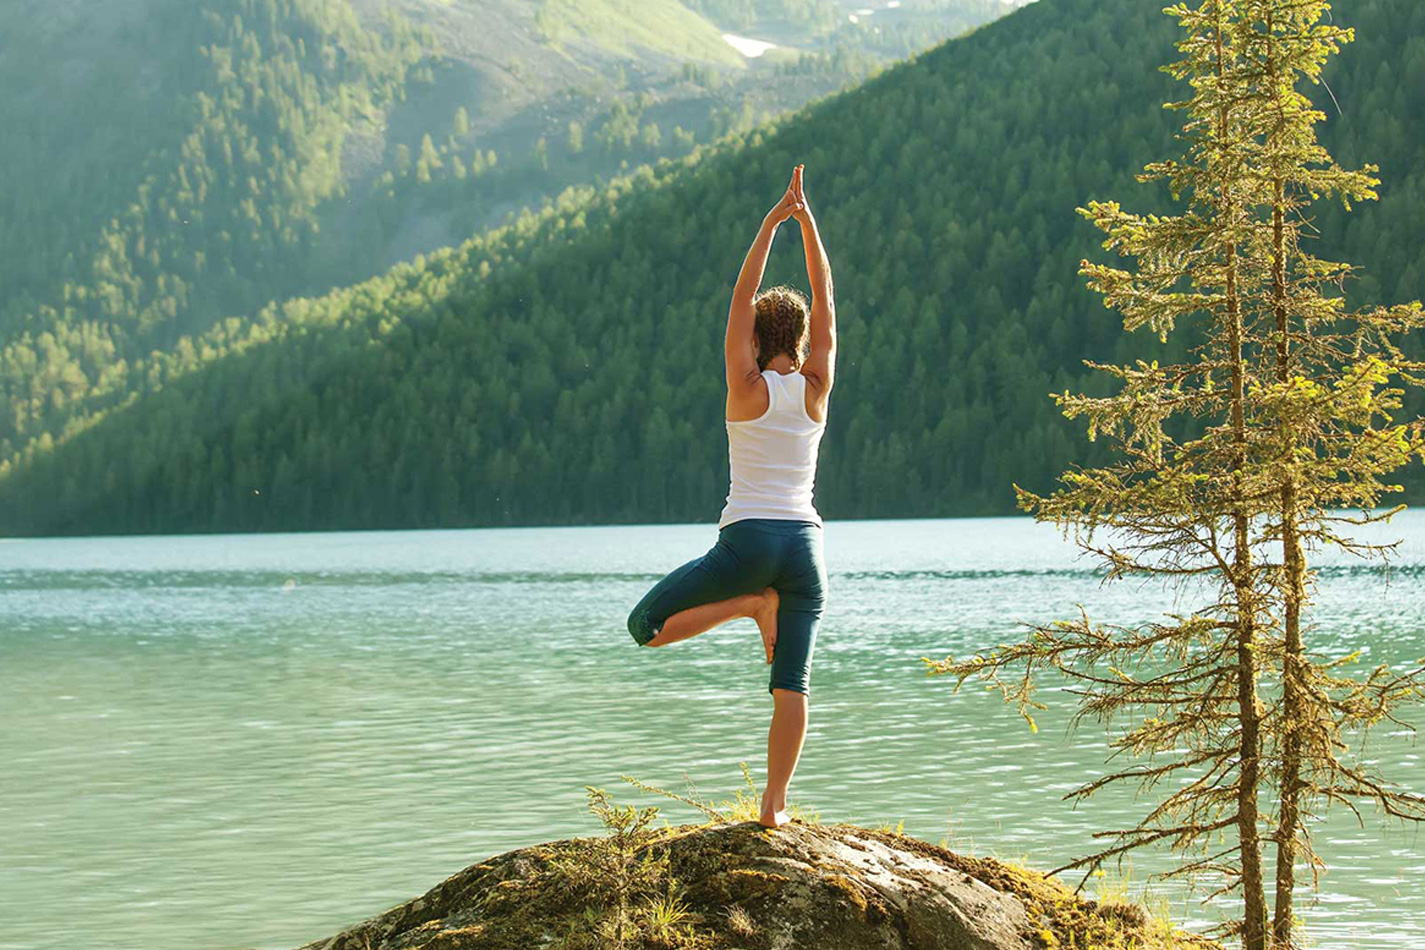 yoga medititation tour package